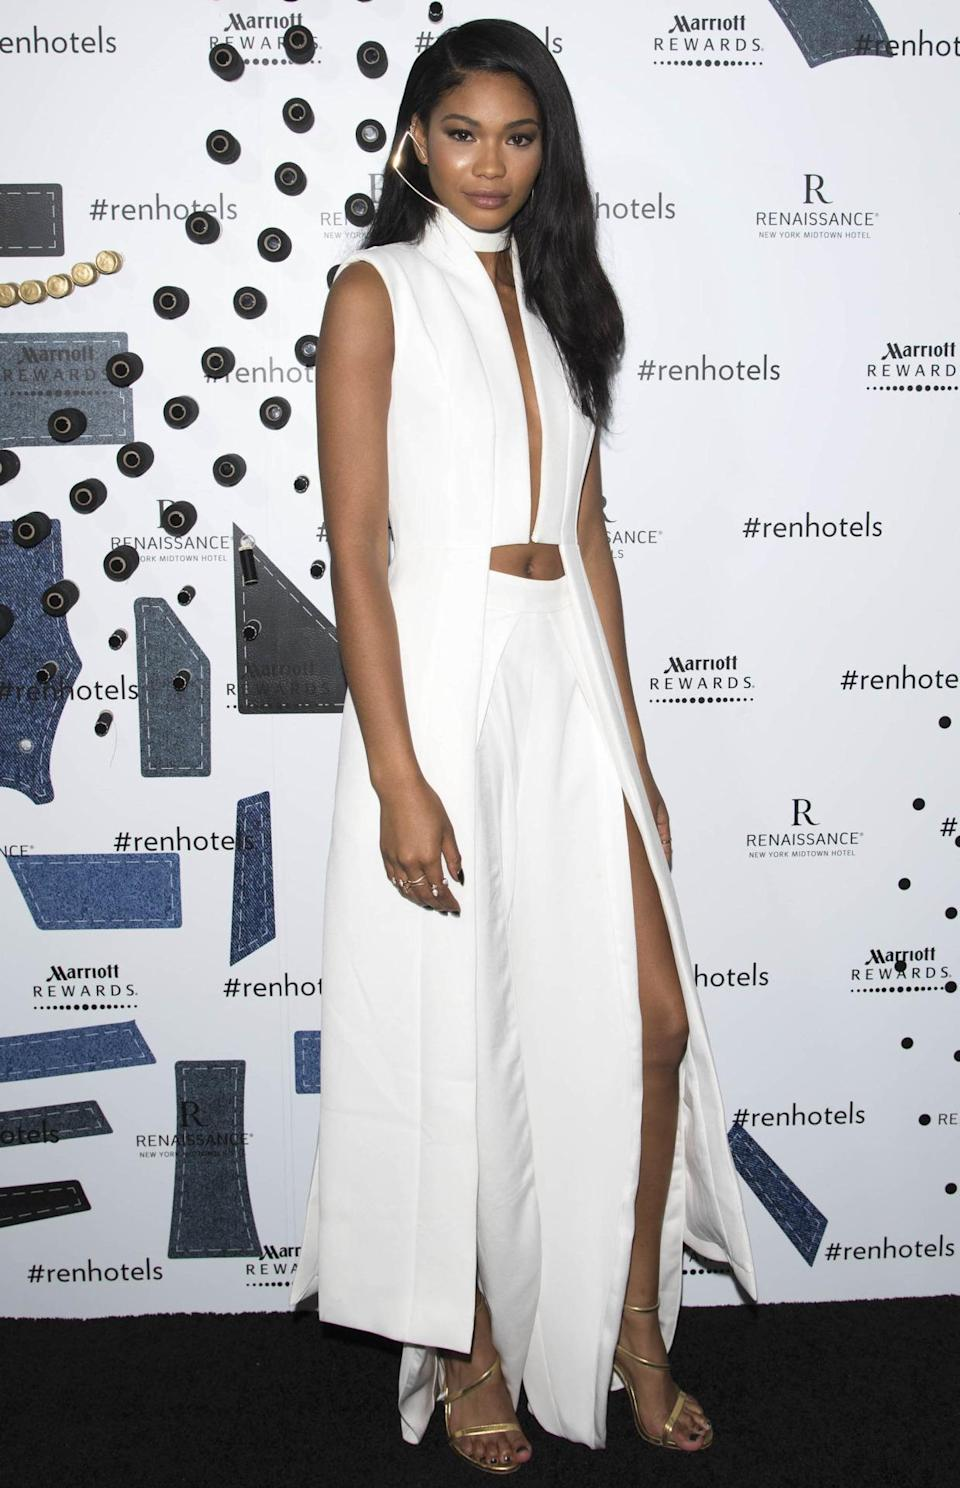 <p>At first we really loved this sleek all white outfit, that is until we noticed the belly button hole. Was that really necessary? <i>[Photo: Rex Features]</i></p>